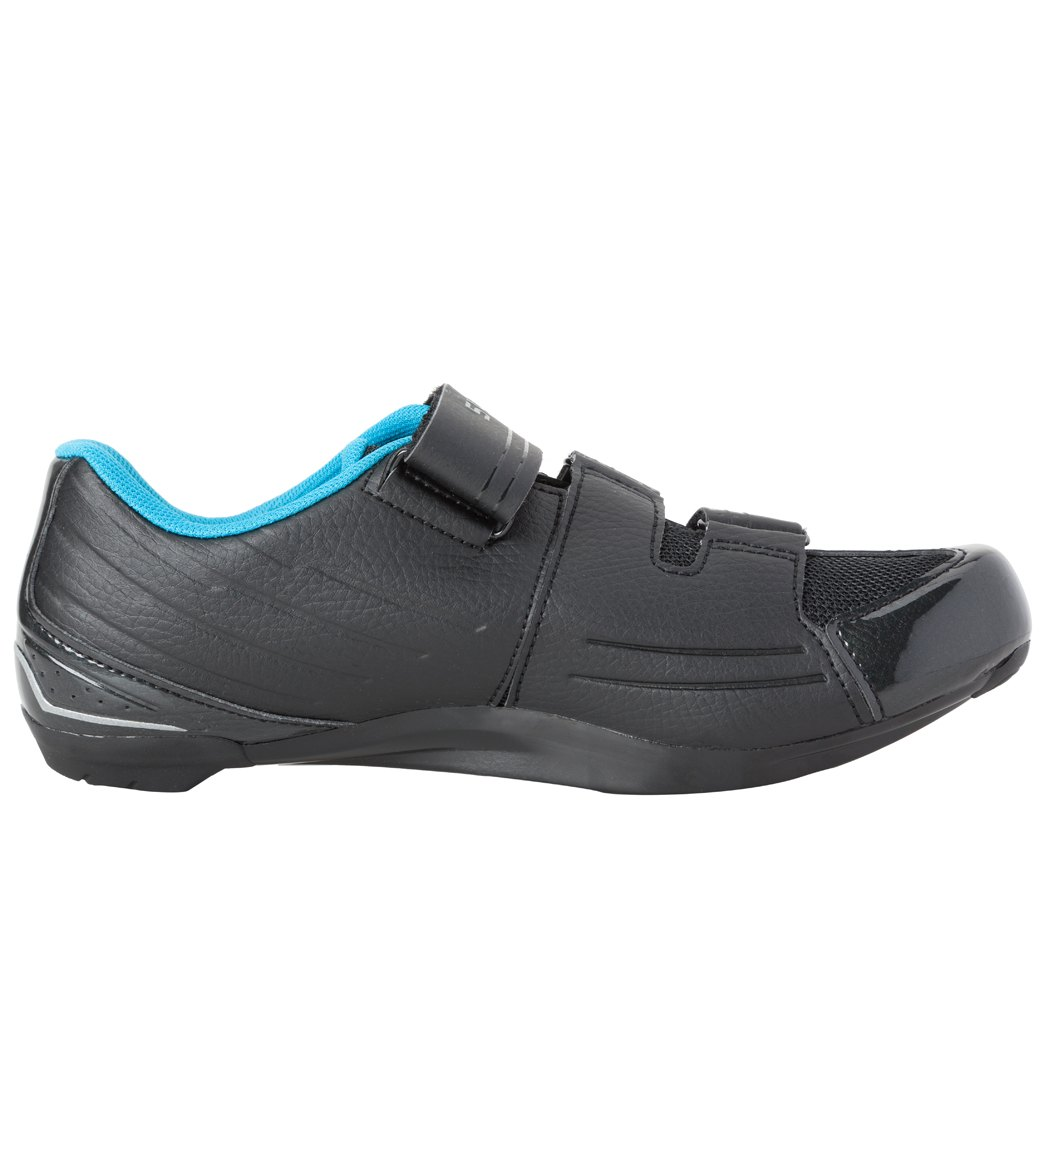 6dd1f44e035 Shimano Women s SH-RP2 Cycling Shoes at SwimOutlet.com - Free Shipping